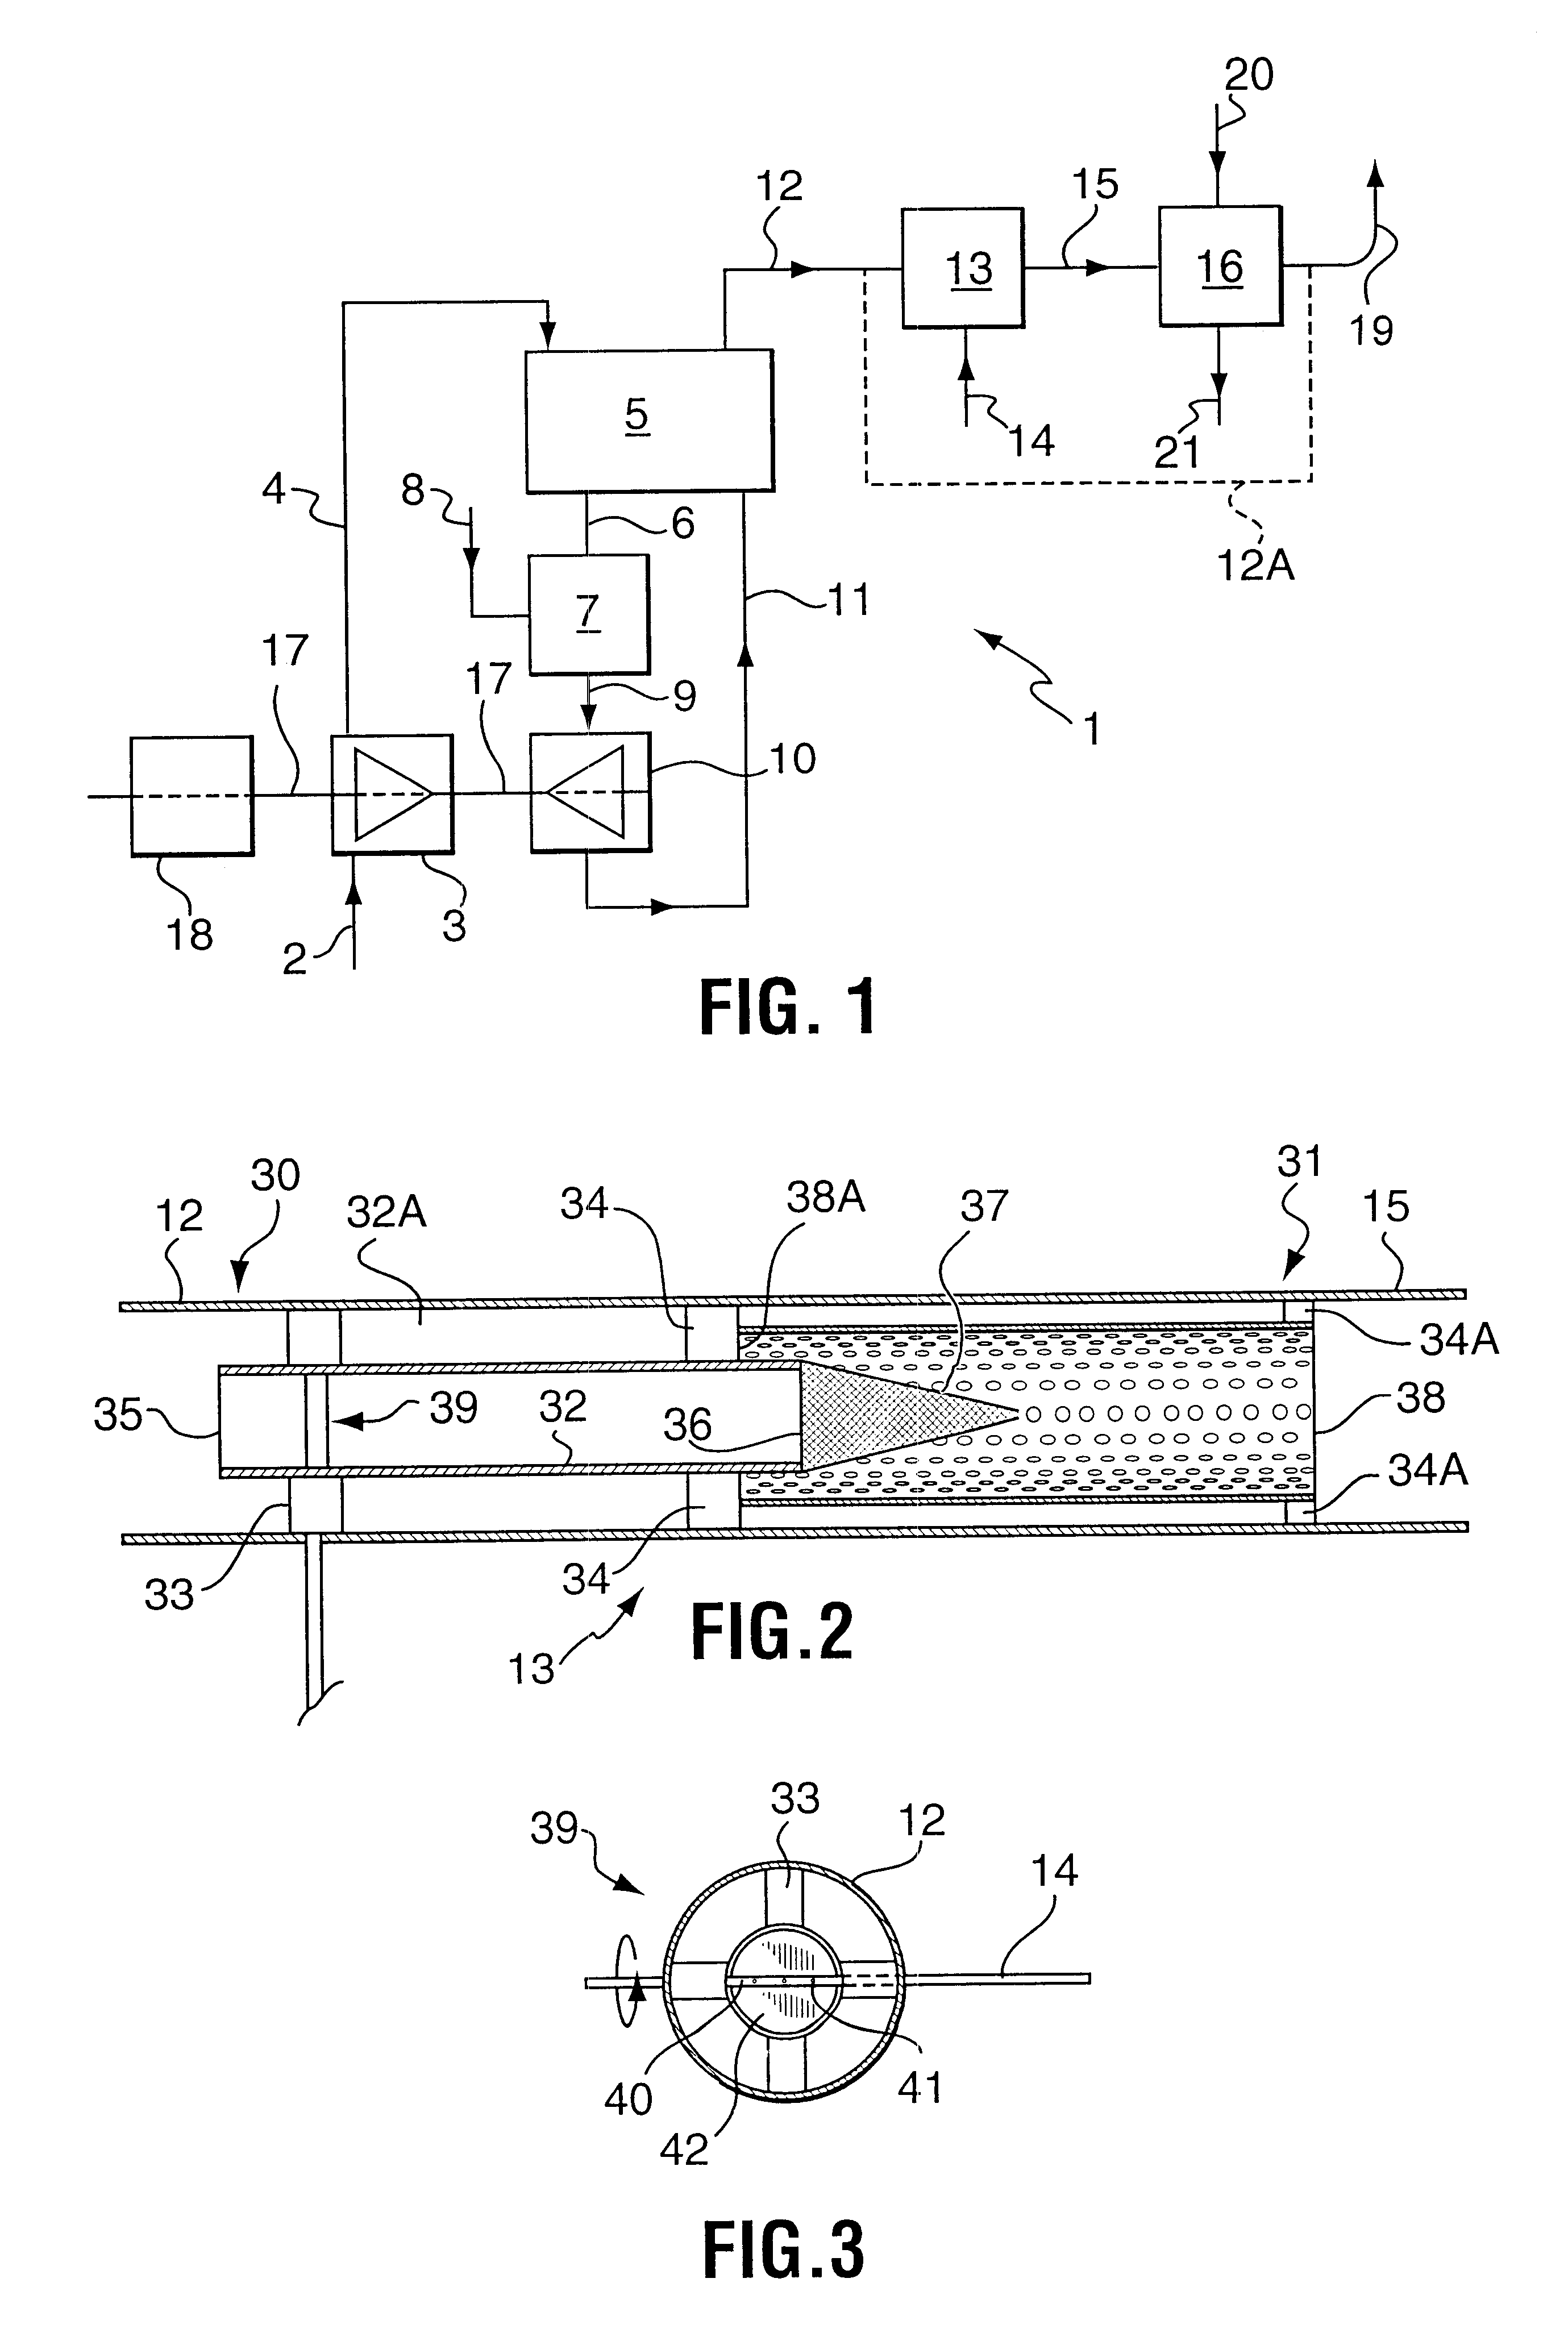 Patent US Duct burner with conical wire mesh and vanes